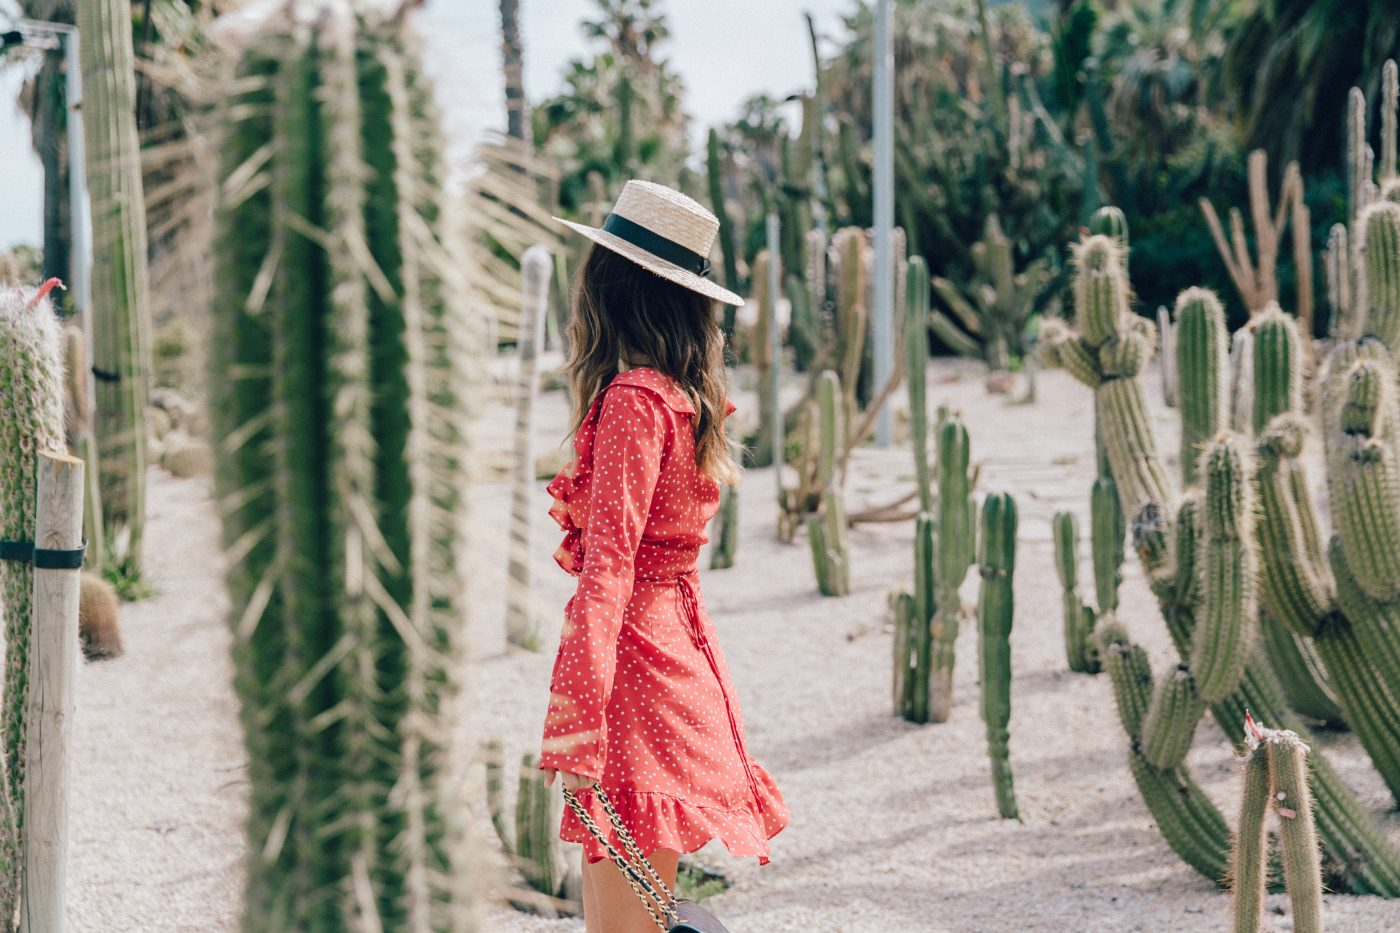 Realisation_Par_Dress-Star_Print-Red_Dress-Outfit-Catonier-Hat-Lack_Of_Color-Black_Sandals_Topshop-Barcelona-Collage_Vintage-Mossen_Gardens-74